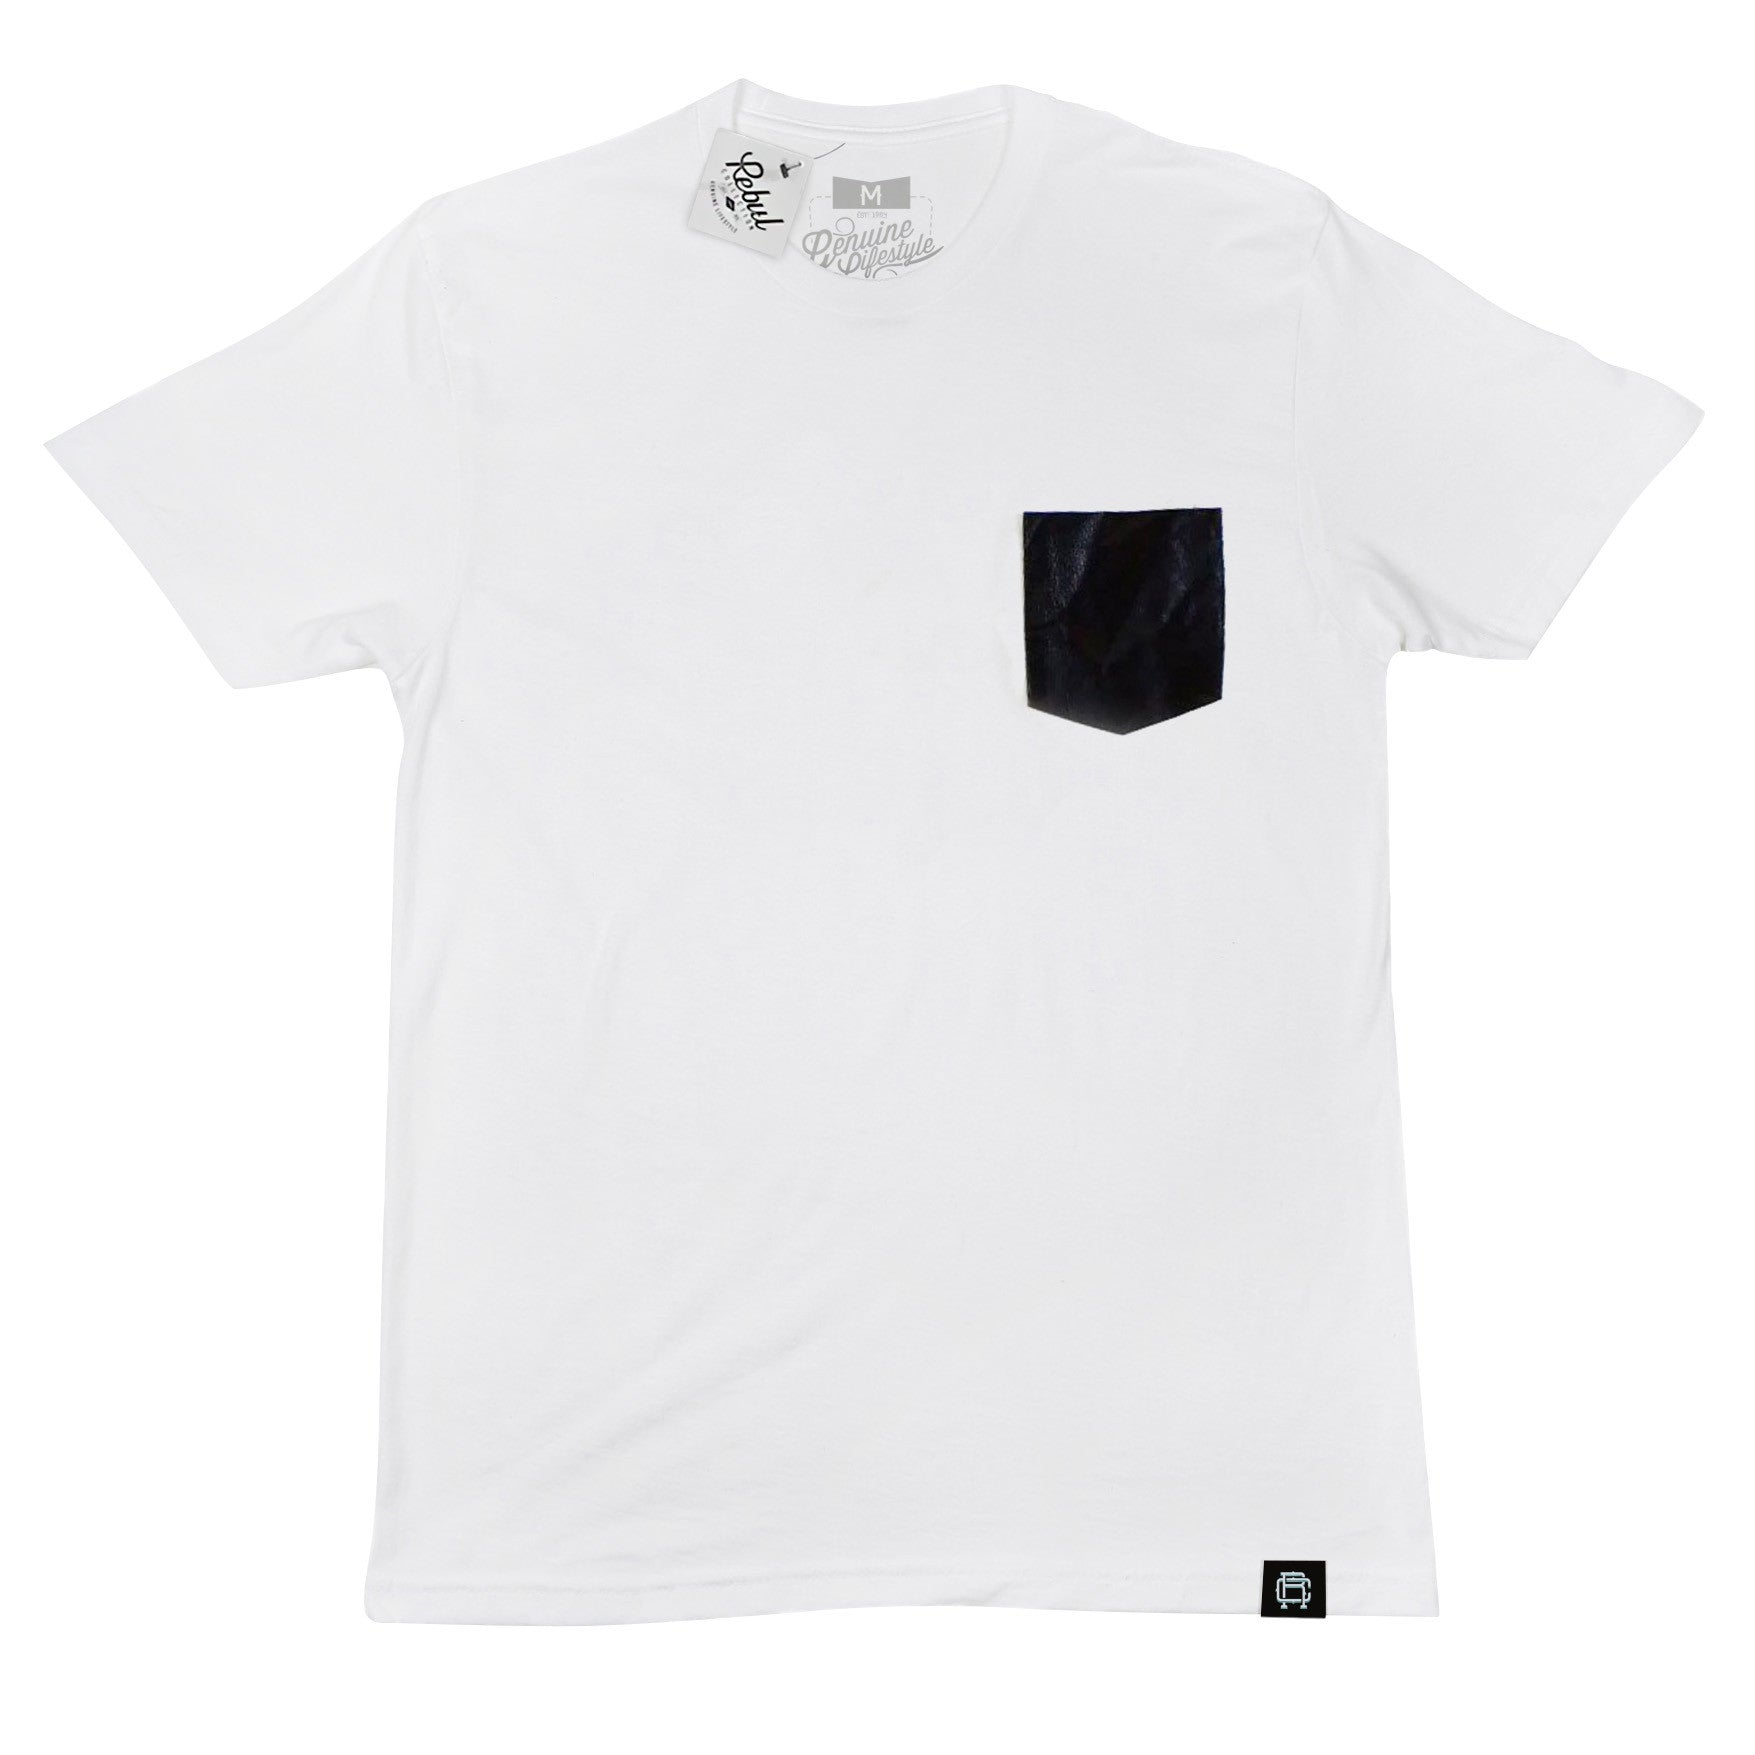 Men's pocket t-shirt Miami Faux Leather Pocket.